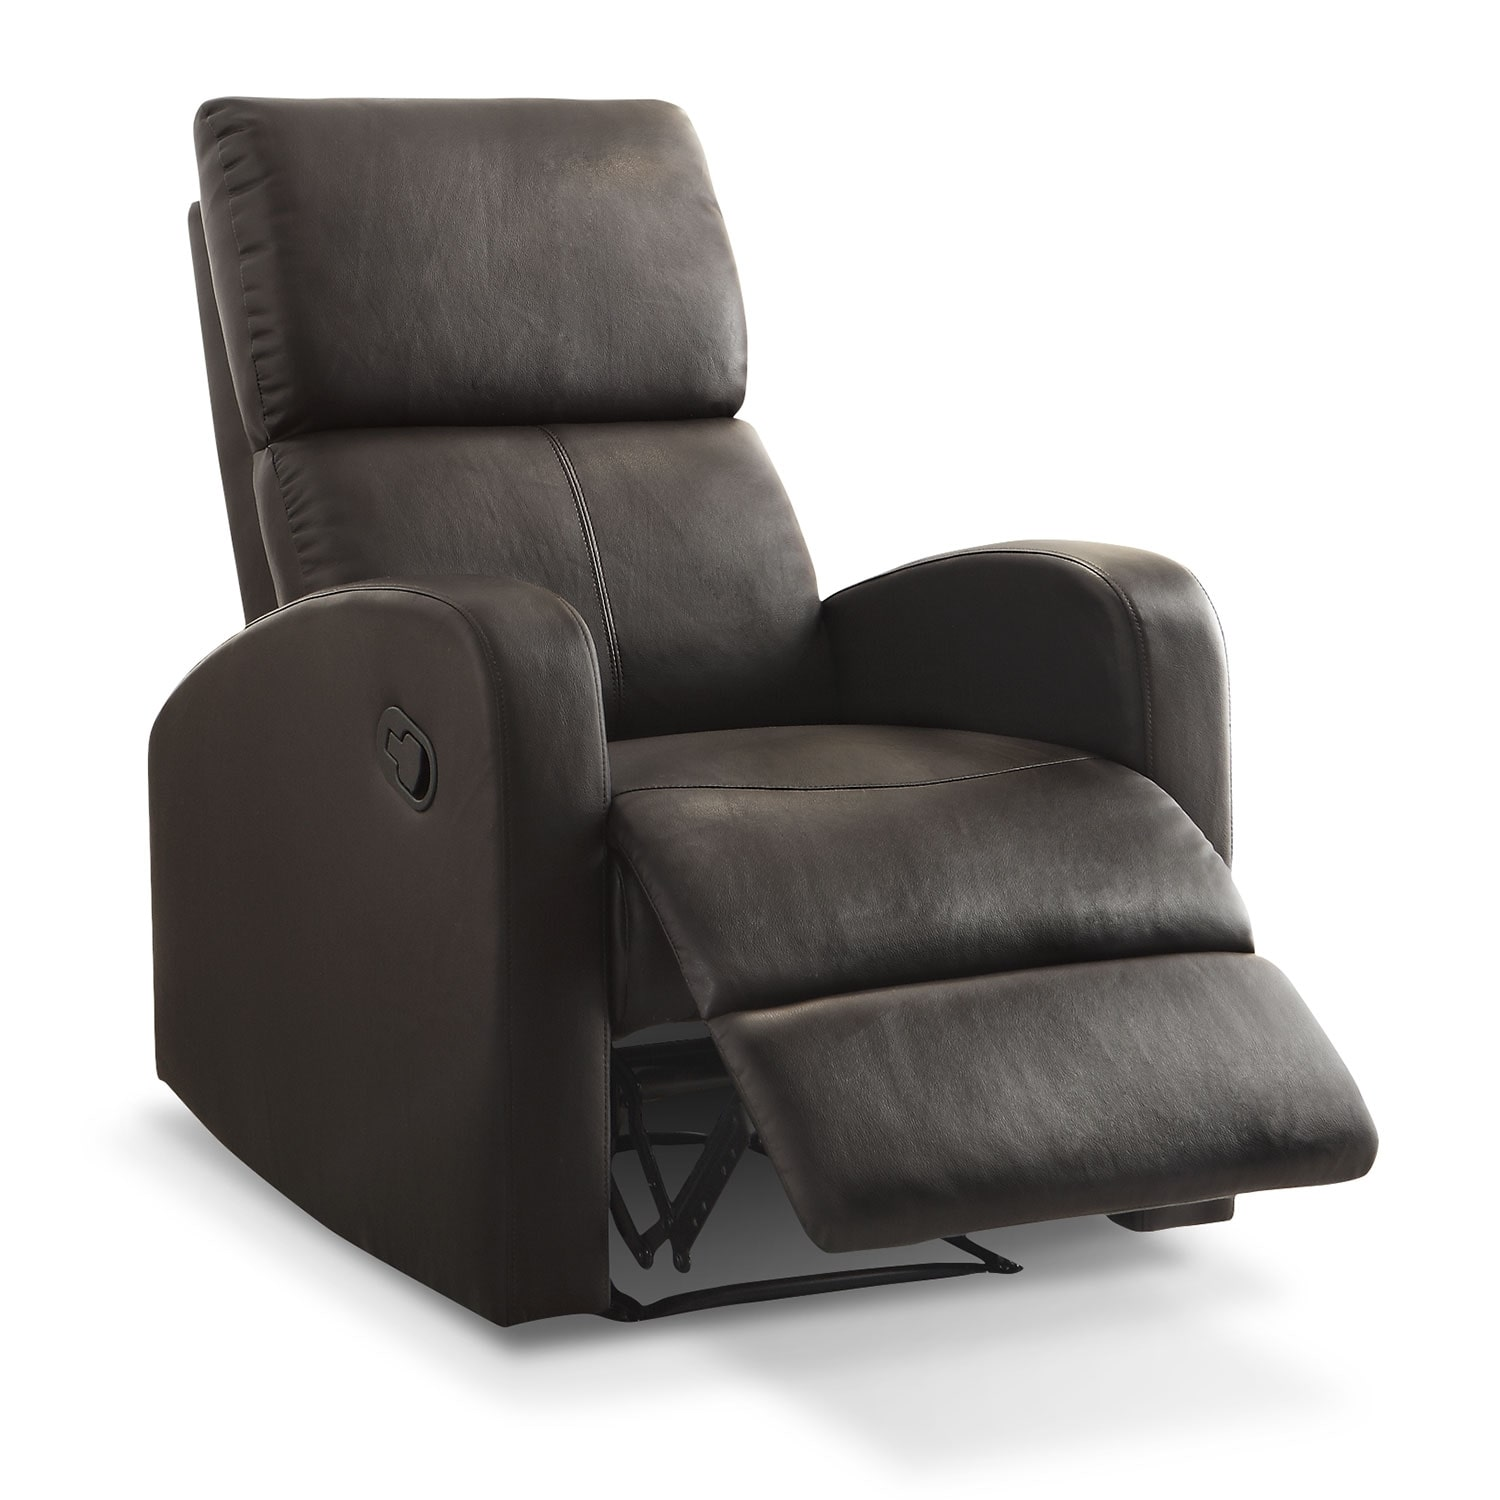 Living Room Furniture - Benning Recliner - Dark Brown